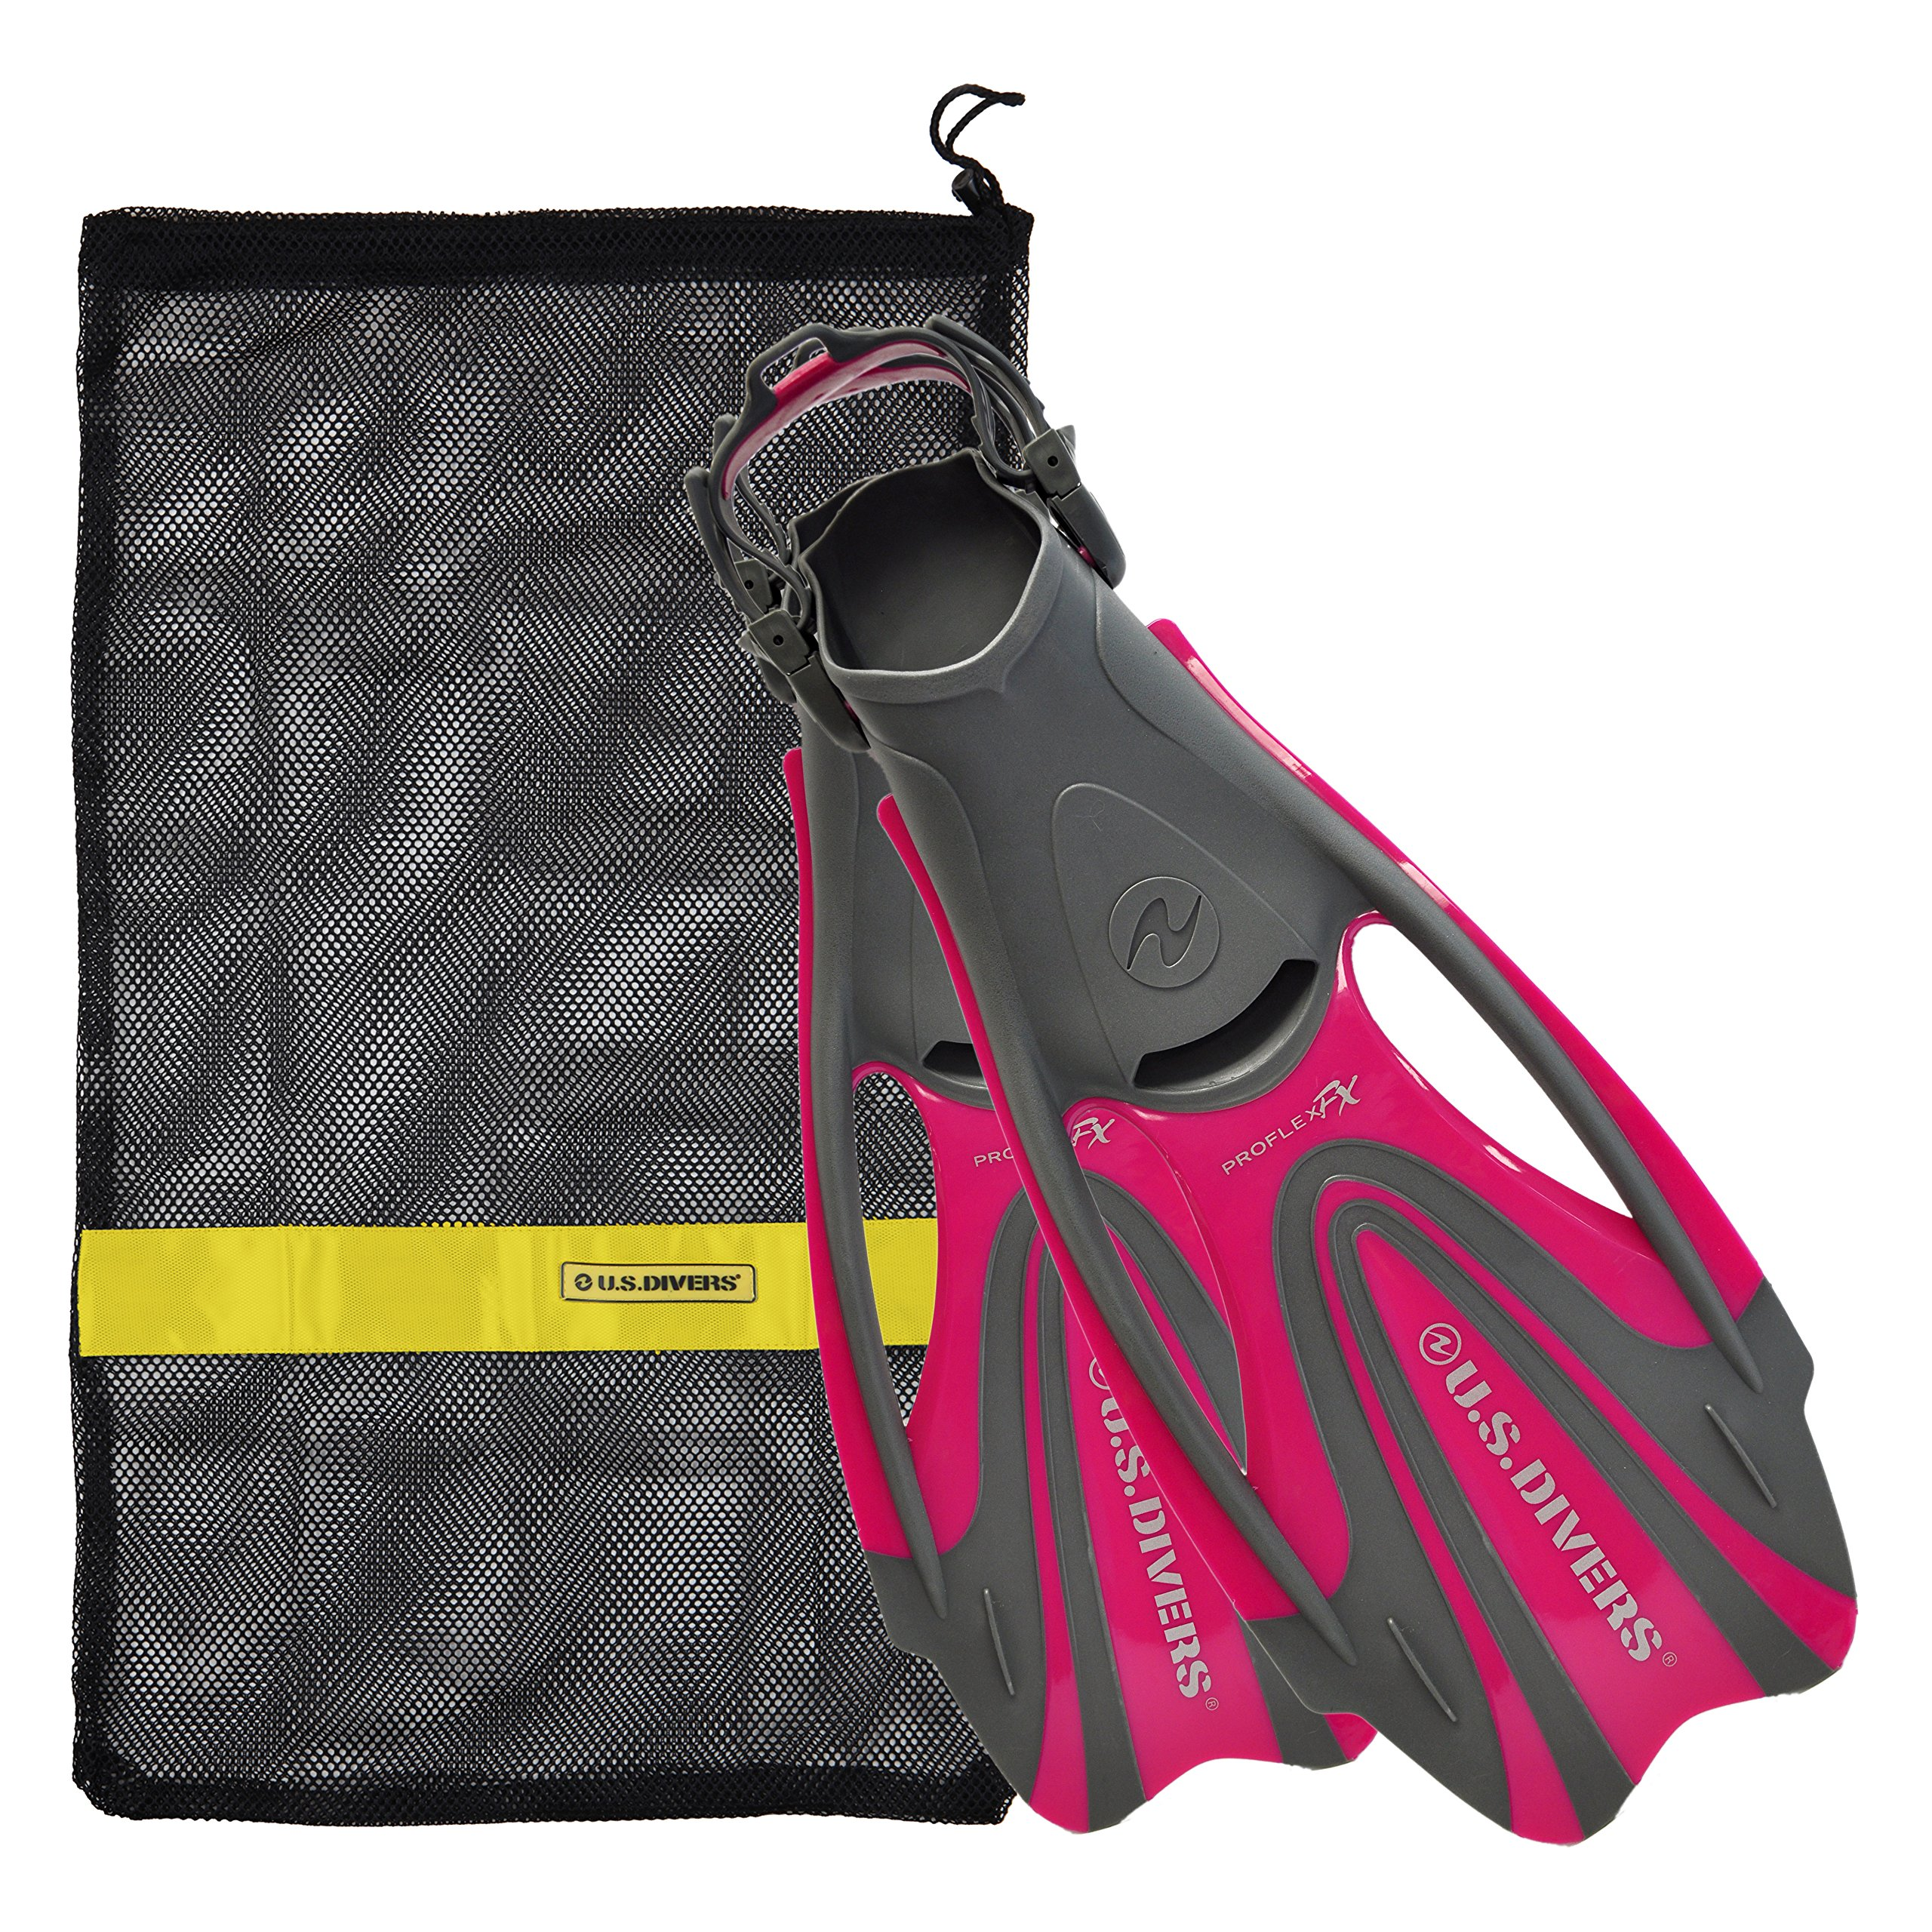 U.S. Divers Proflex FX Fin with Mesh Carrying Bag, Raspberry, Medium by U.S. Divers